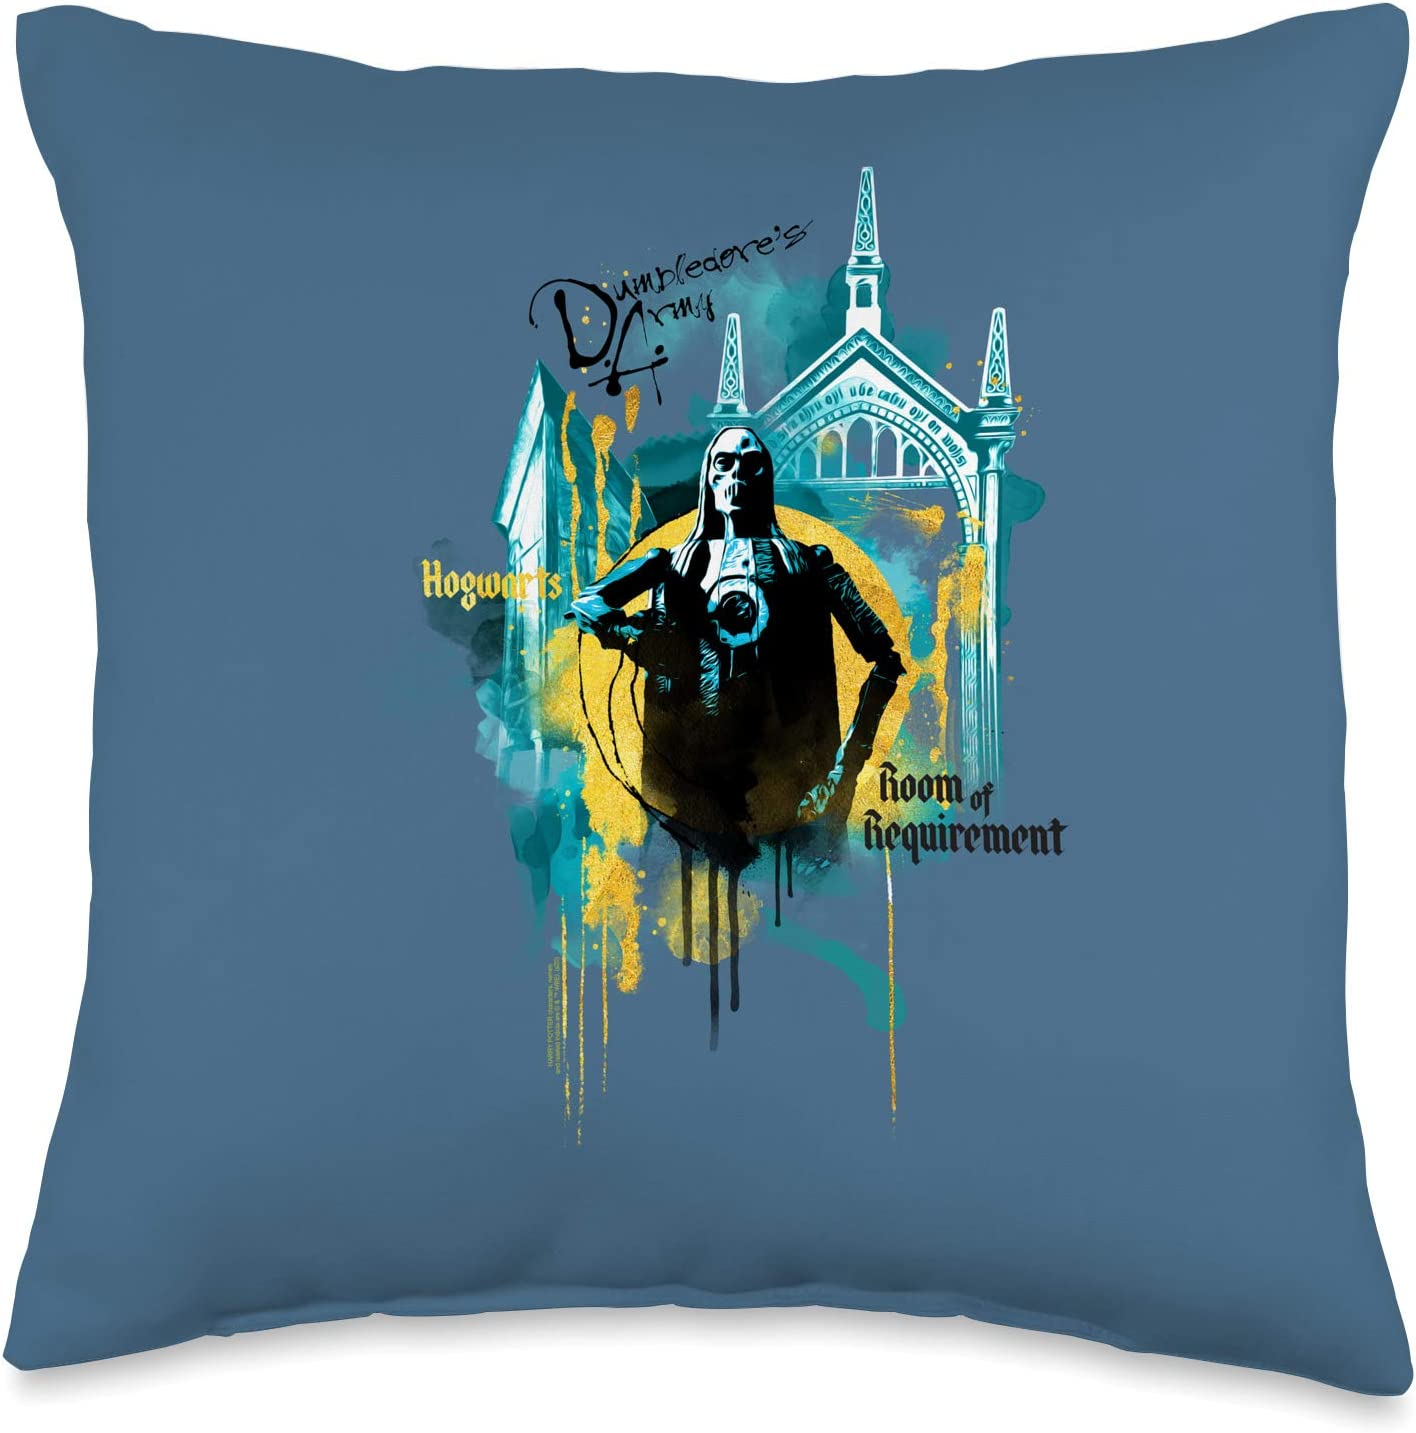 Harry Potter Urban Elegance Room of Requirement Throw Pillow, 16x16, Multicolor